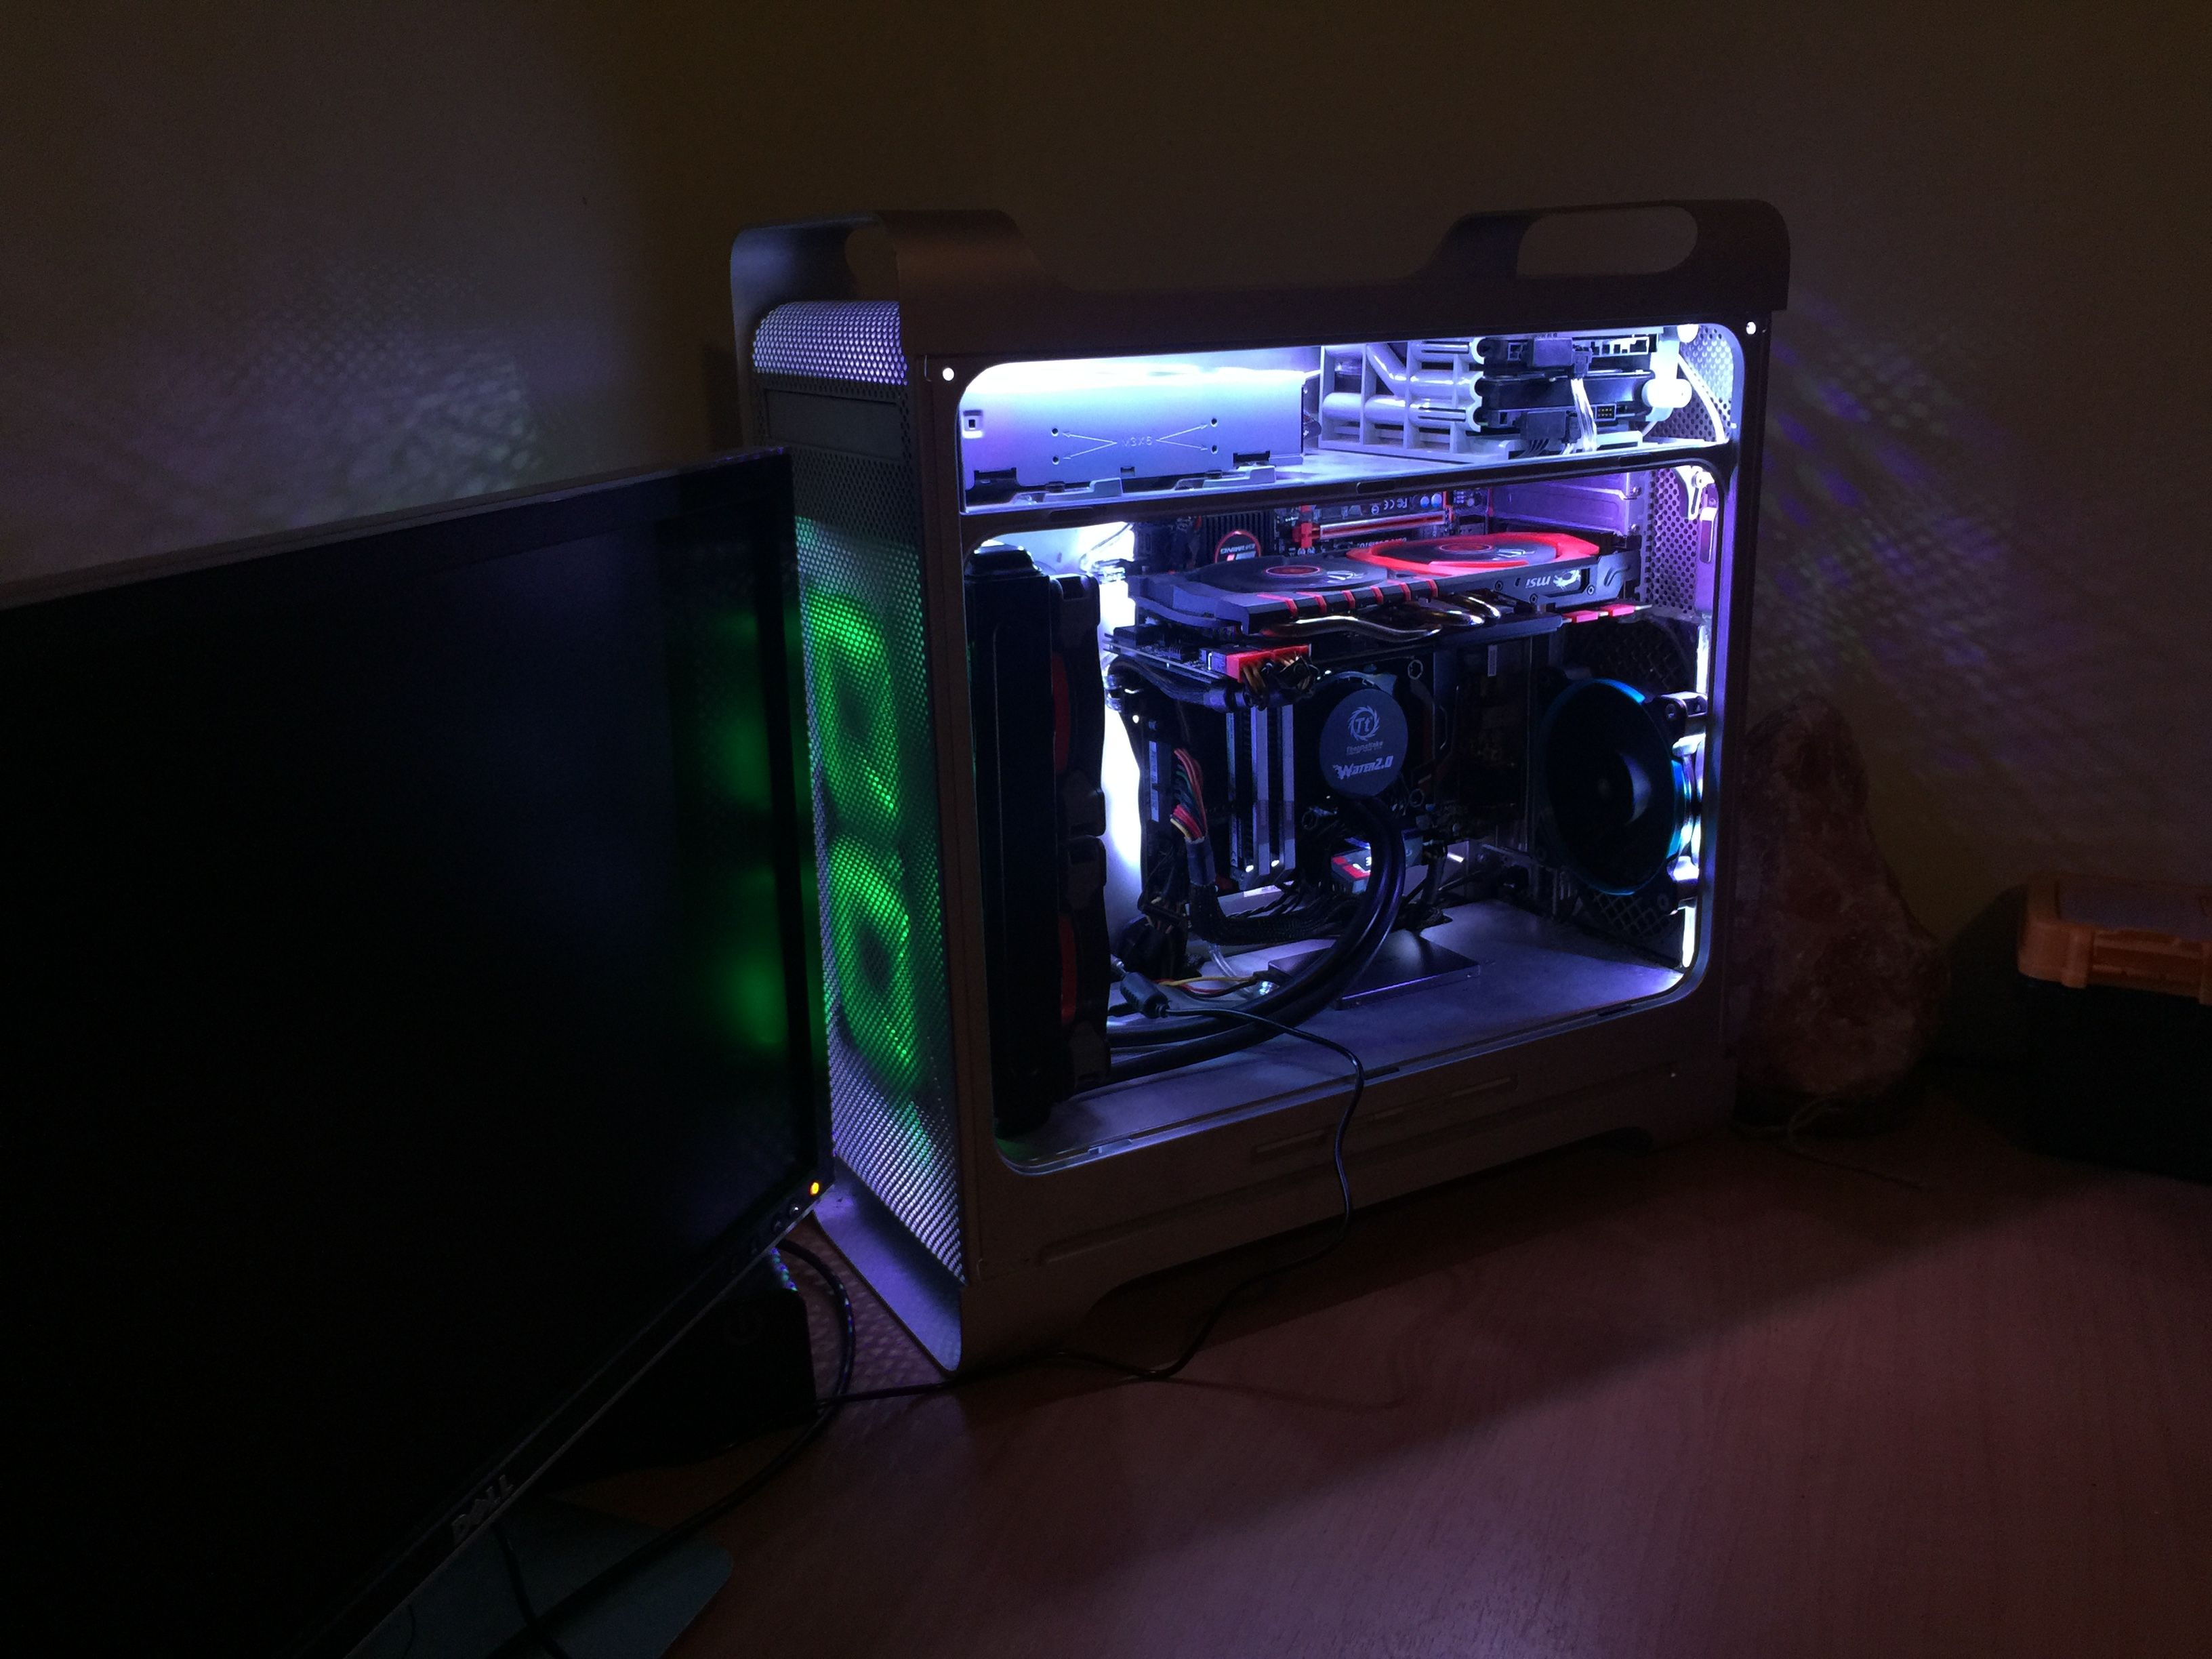 A friend of mine is building his rig inside of a